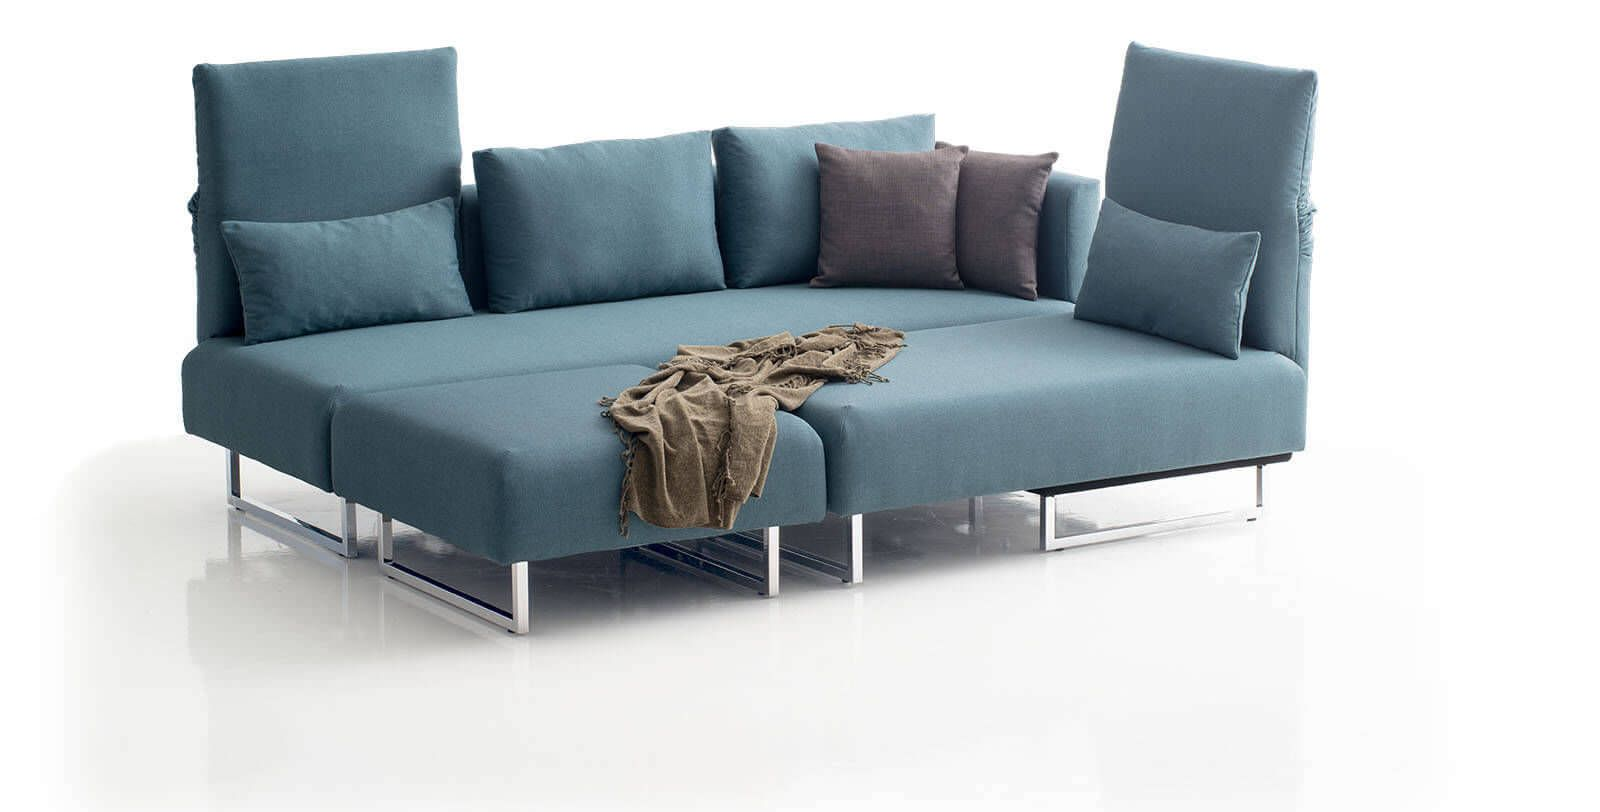 confetto ffertig contemporary living room. Discover All The Information About Product Sofa Bed / Corner Contemporary Fabric CONFETTO By Franz Fertig - Die Collection And Find Where You Can Confetto Ffertig Living Room